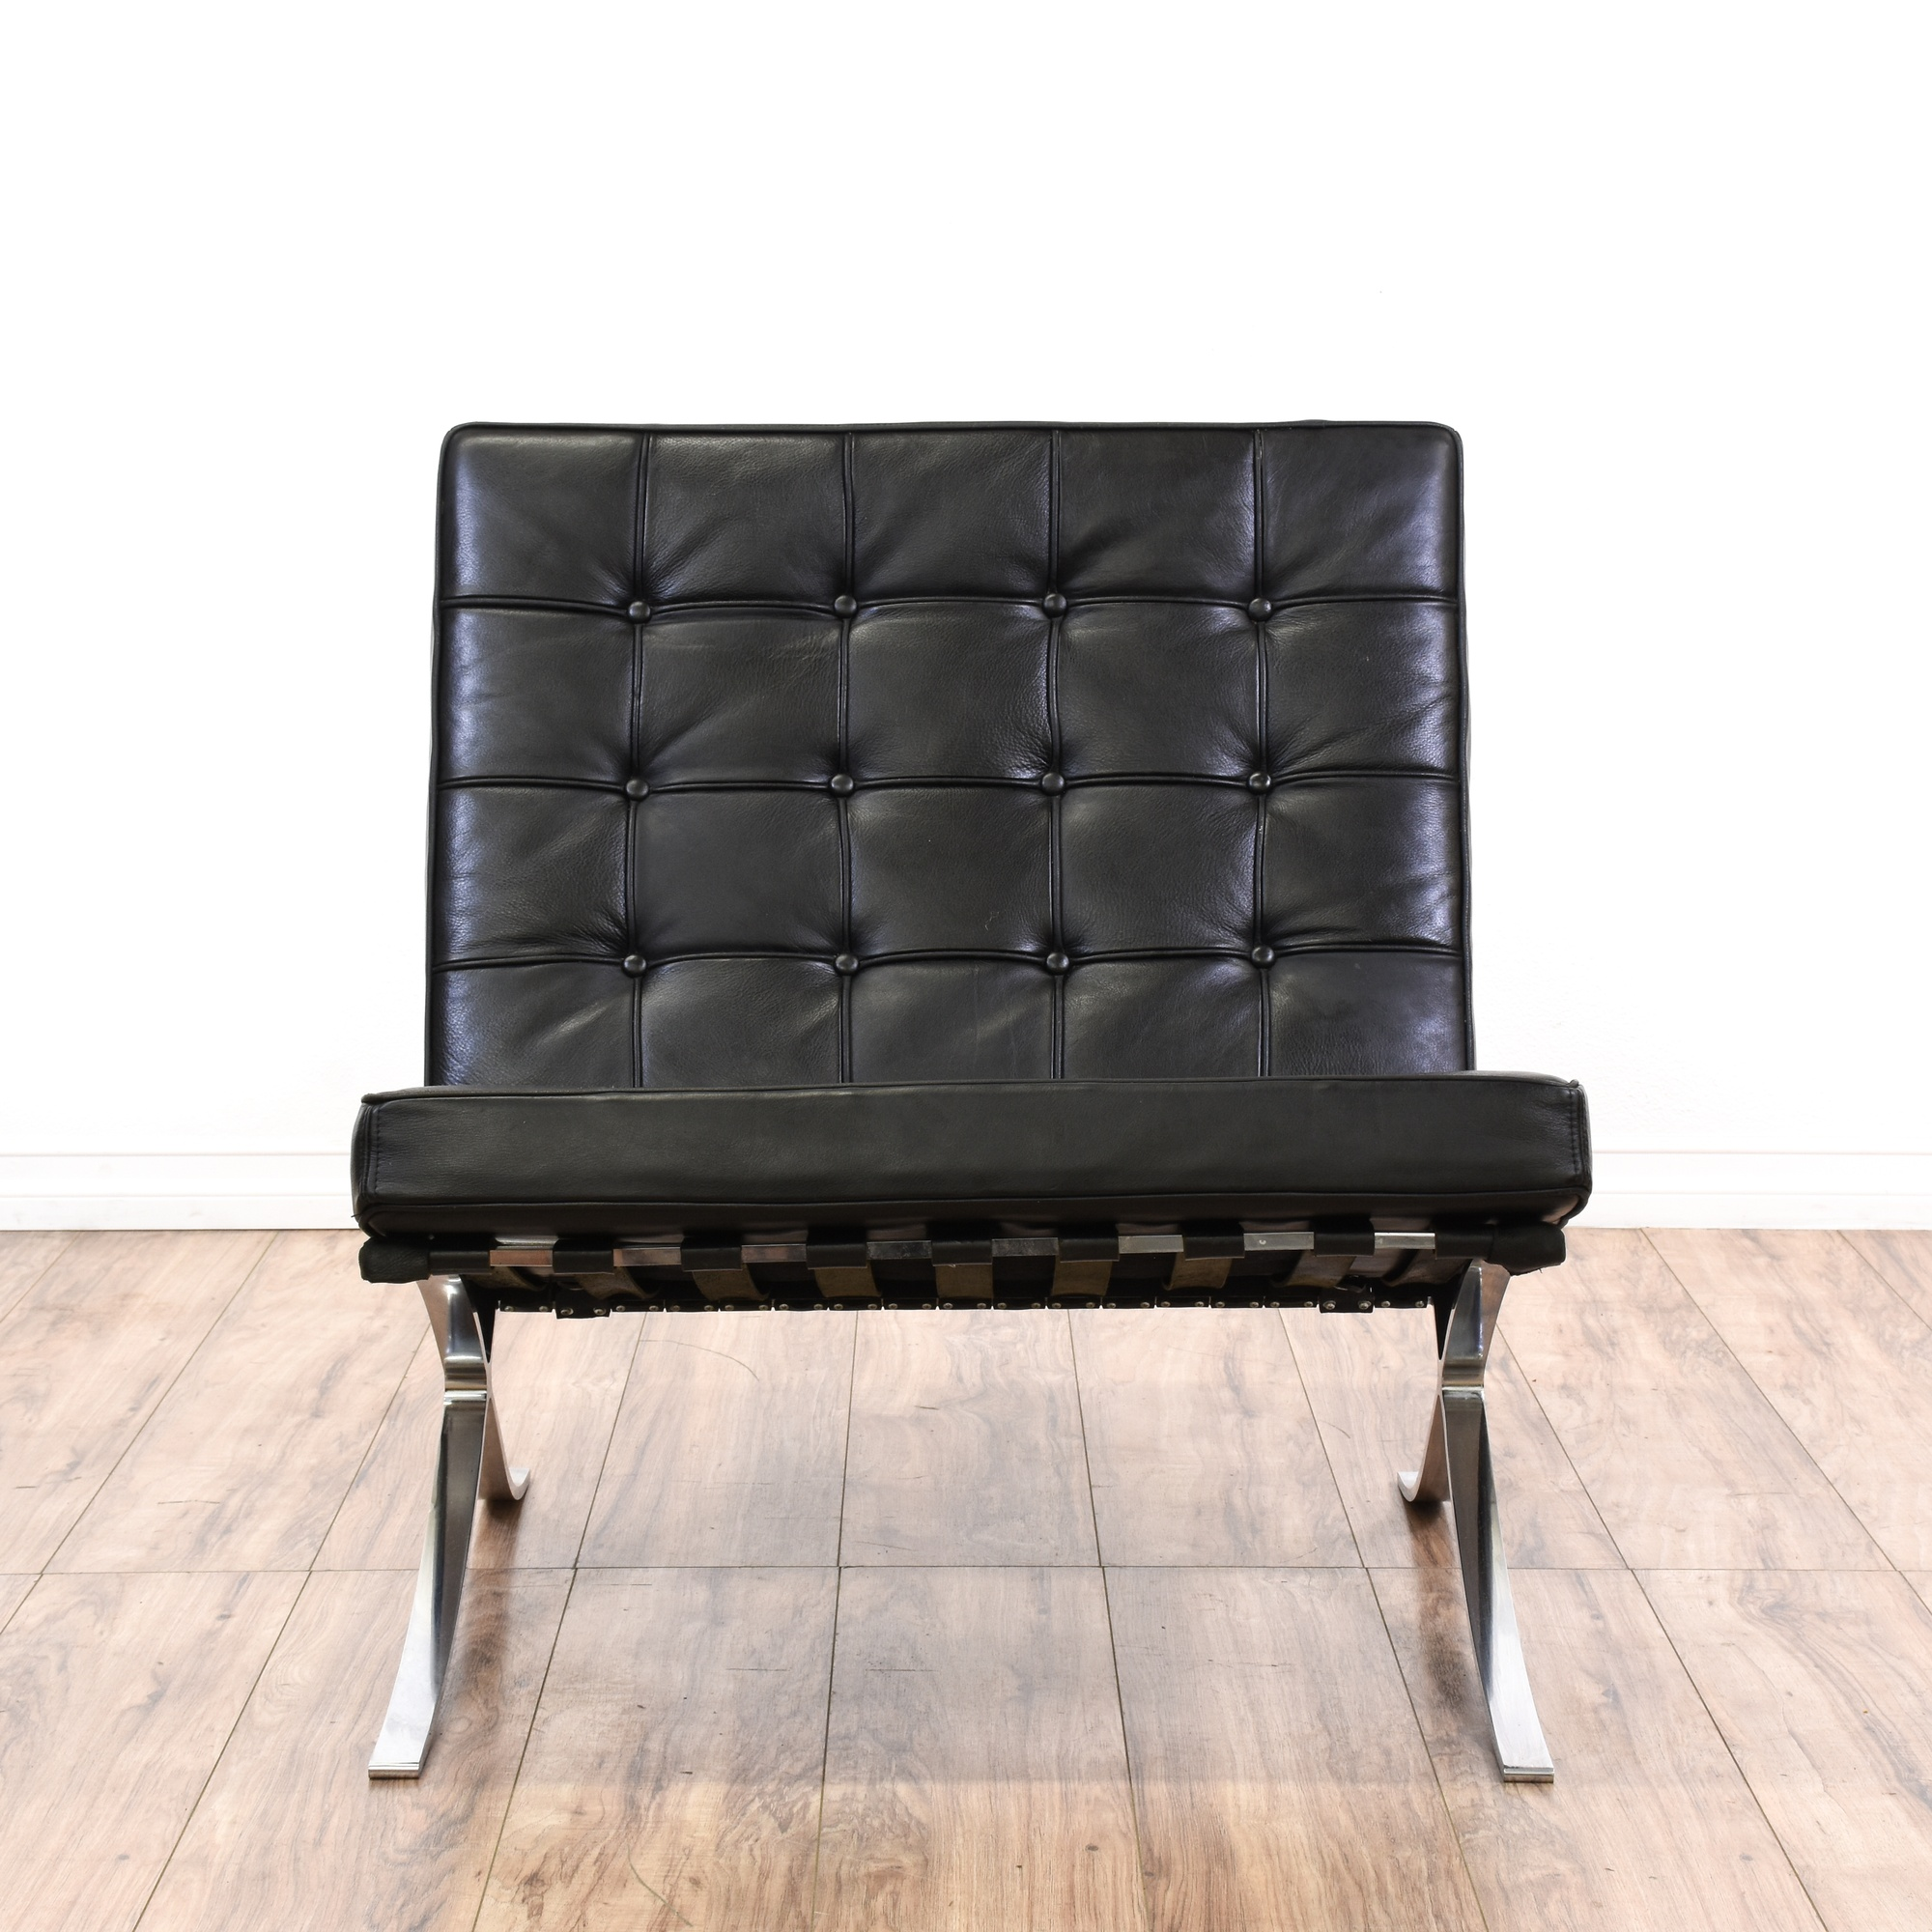 Barcelona Chair Style Ludwig Mies Van Der Rohe Style Barcelona Chair Loveseat Vintage